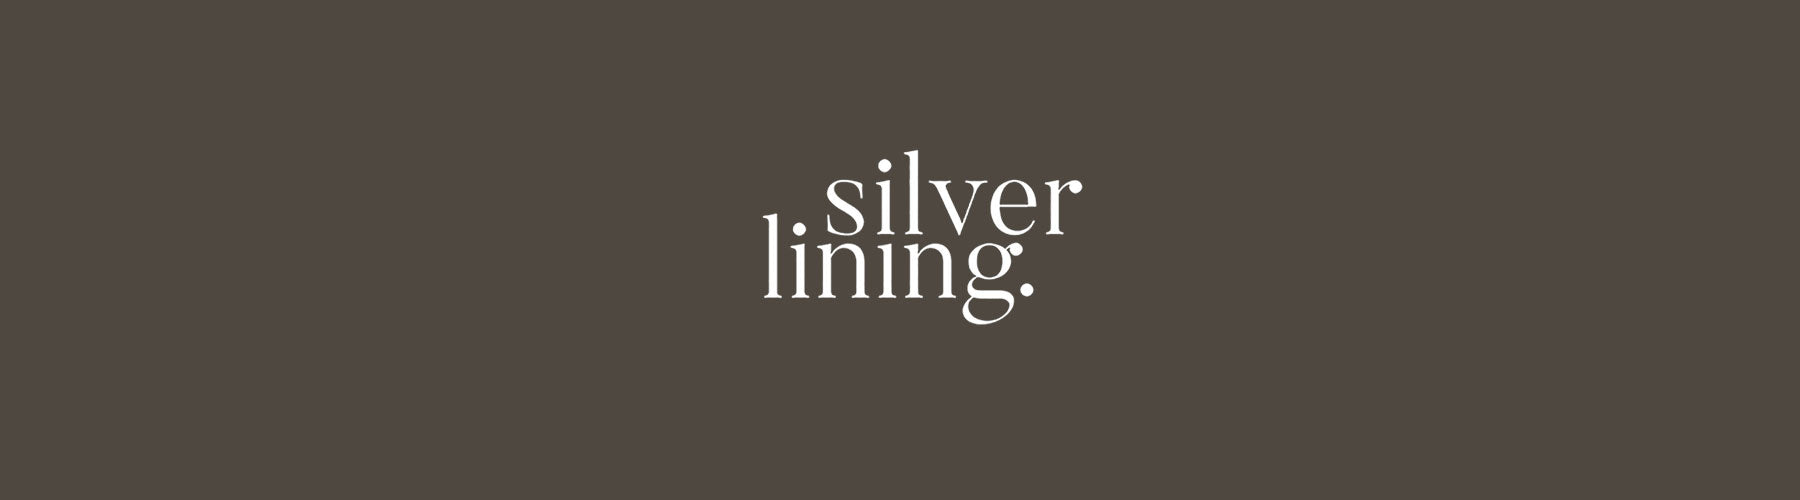 Womens Brands Silver Lining